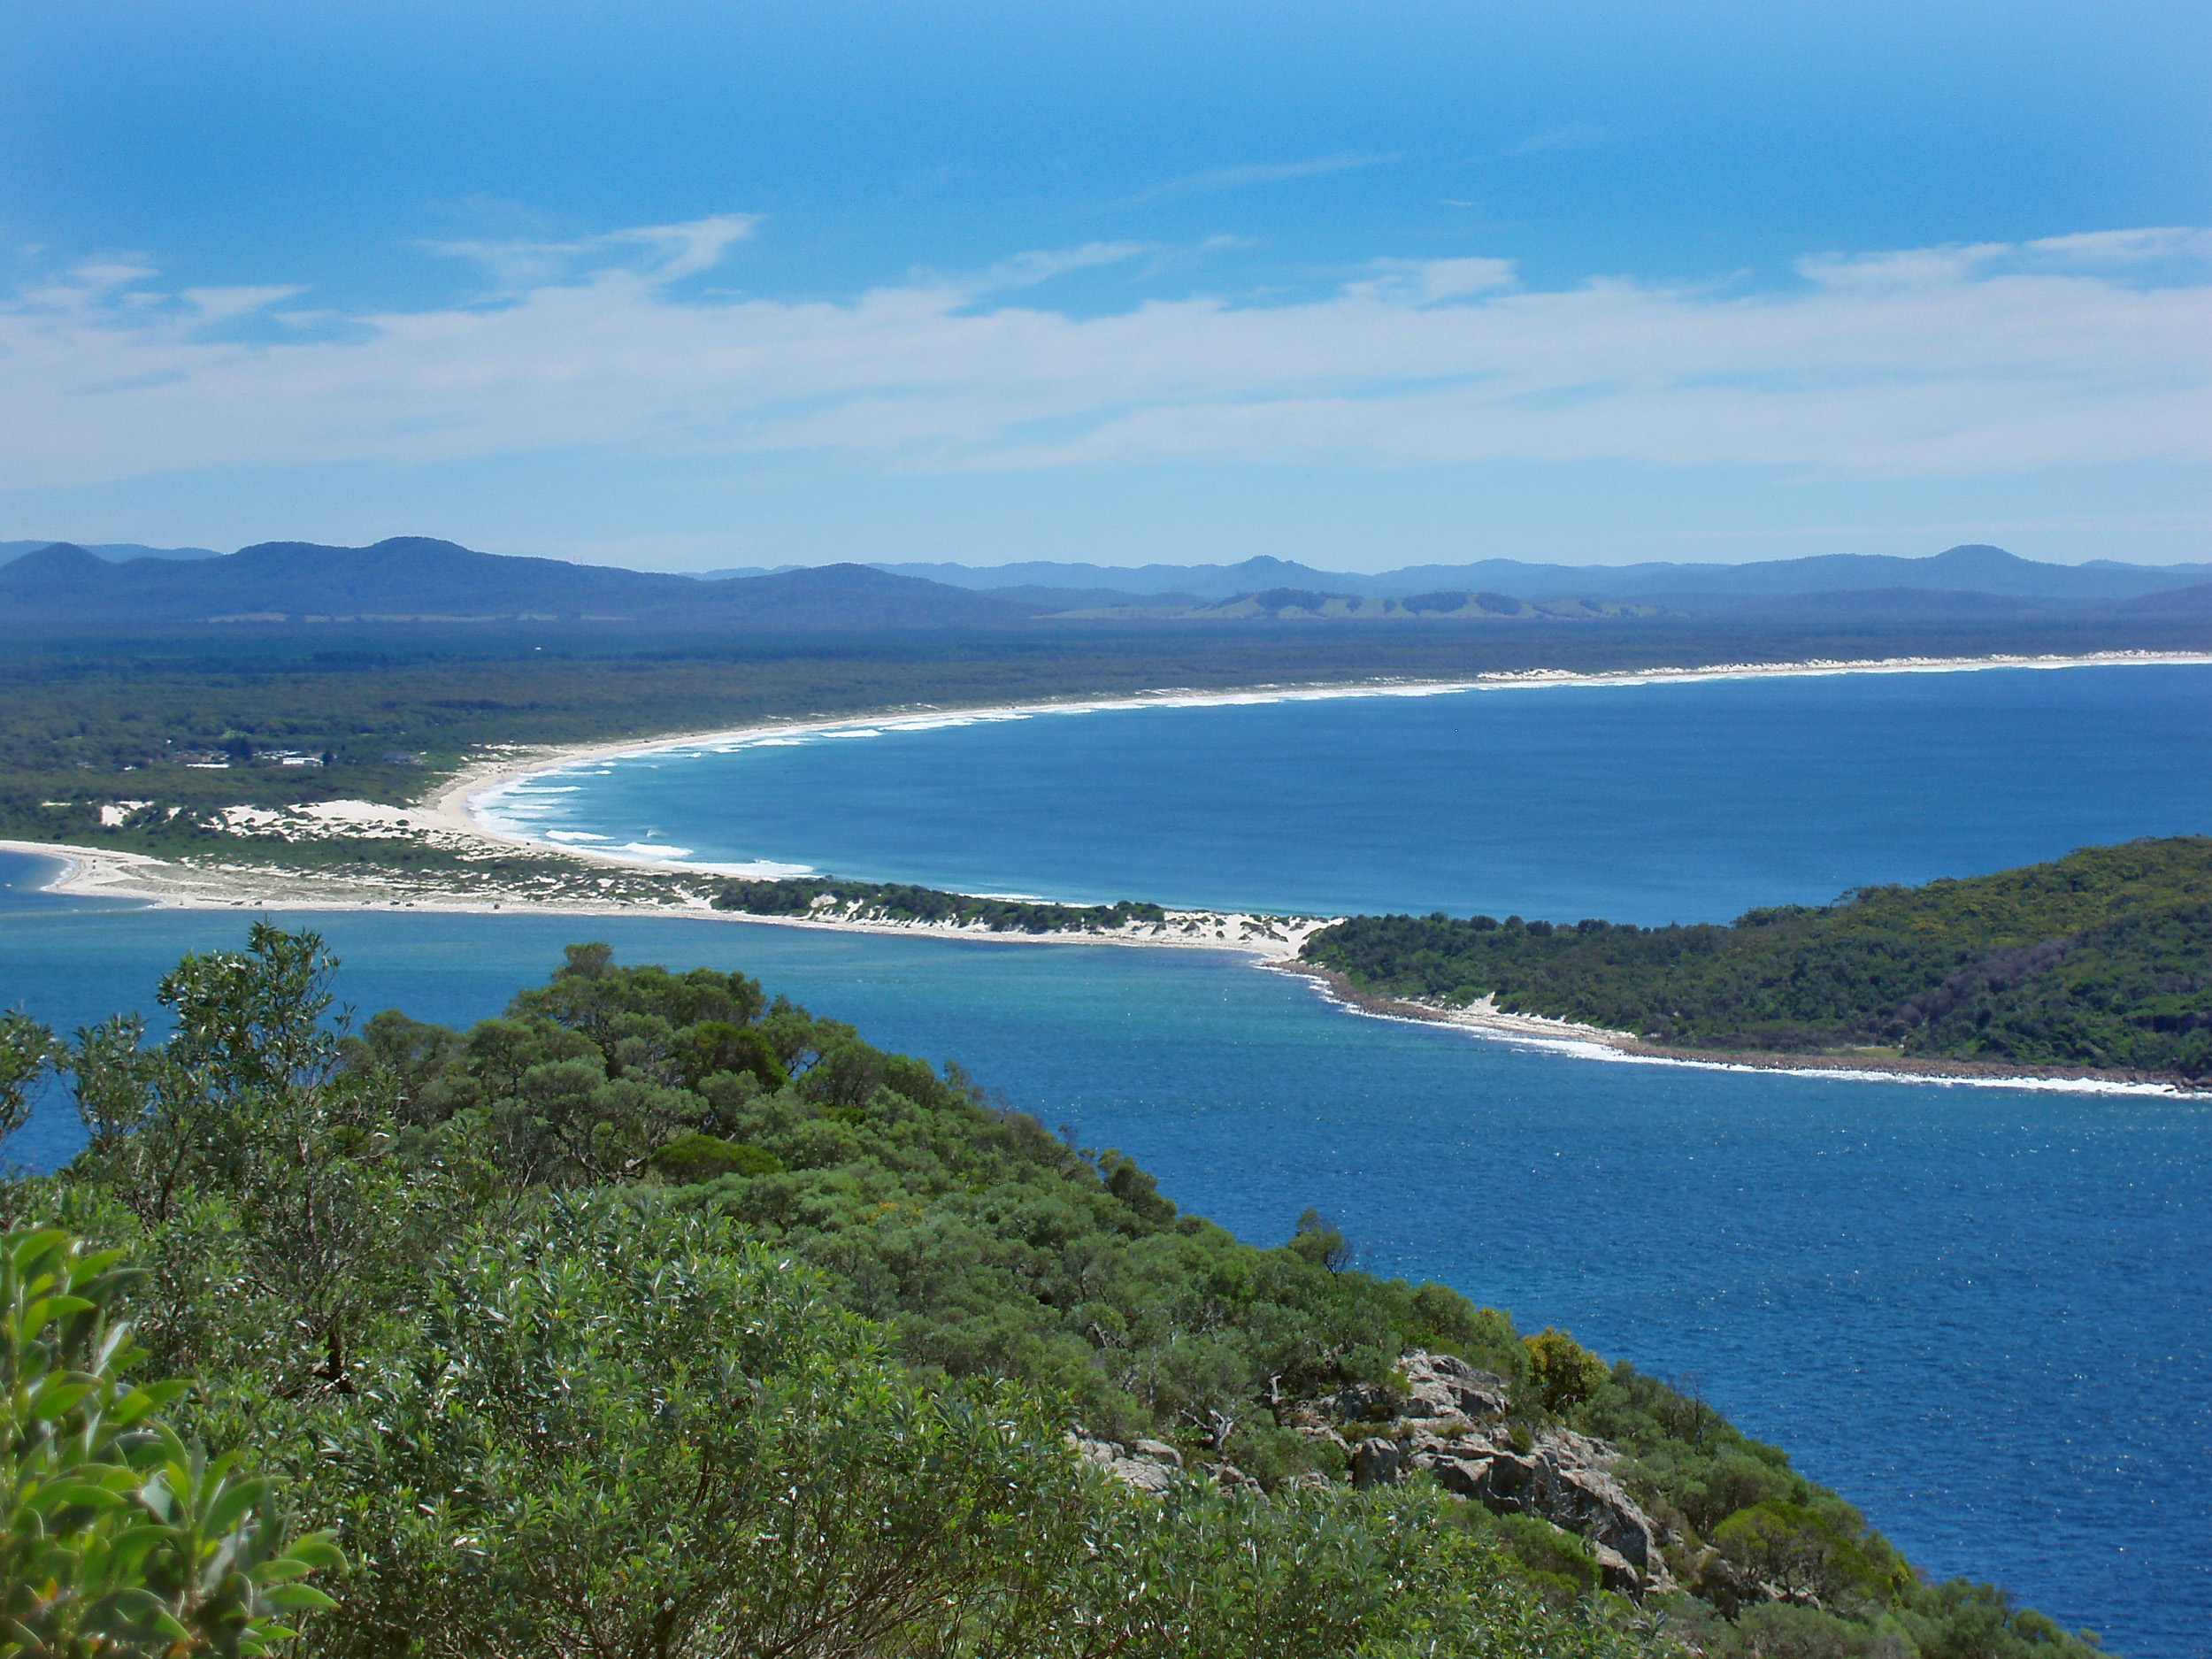 view from Tomaree Head lookout, shoal bay, port stephens